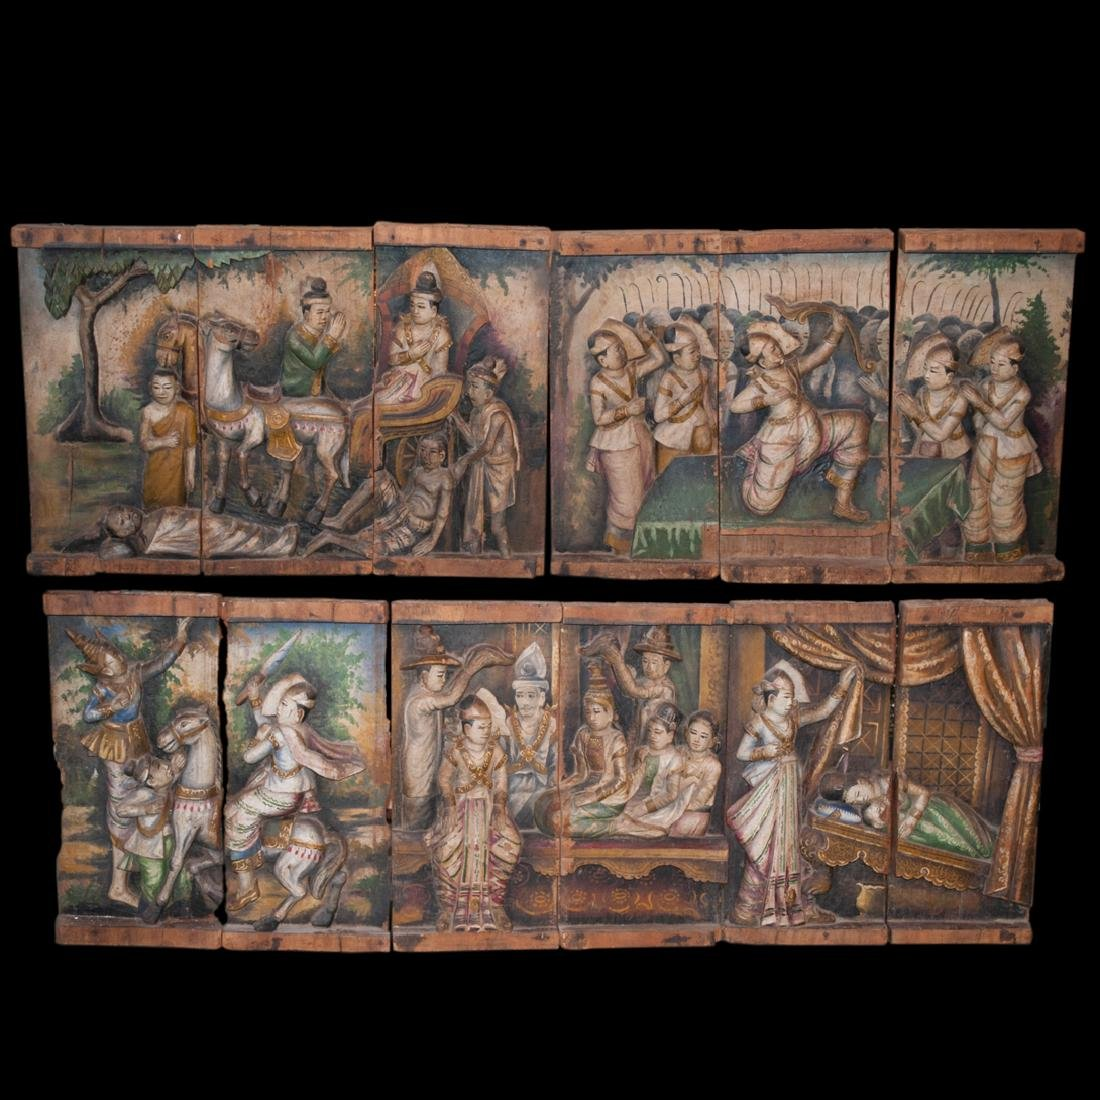 Antique Carved Wood Plaques of Buddha's Life